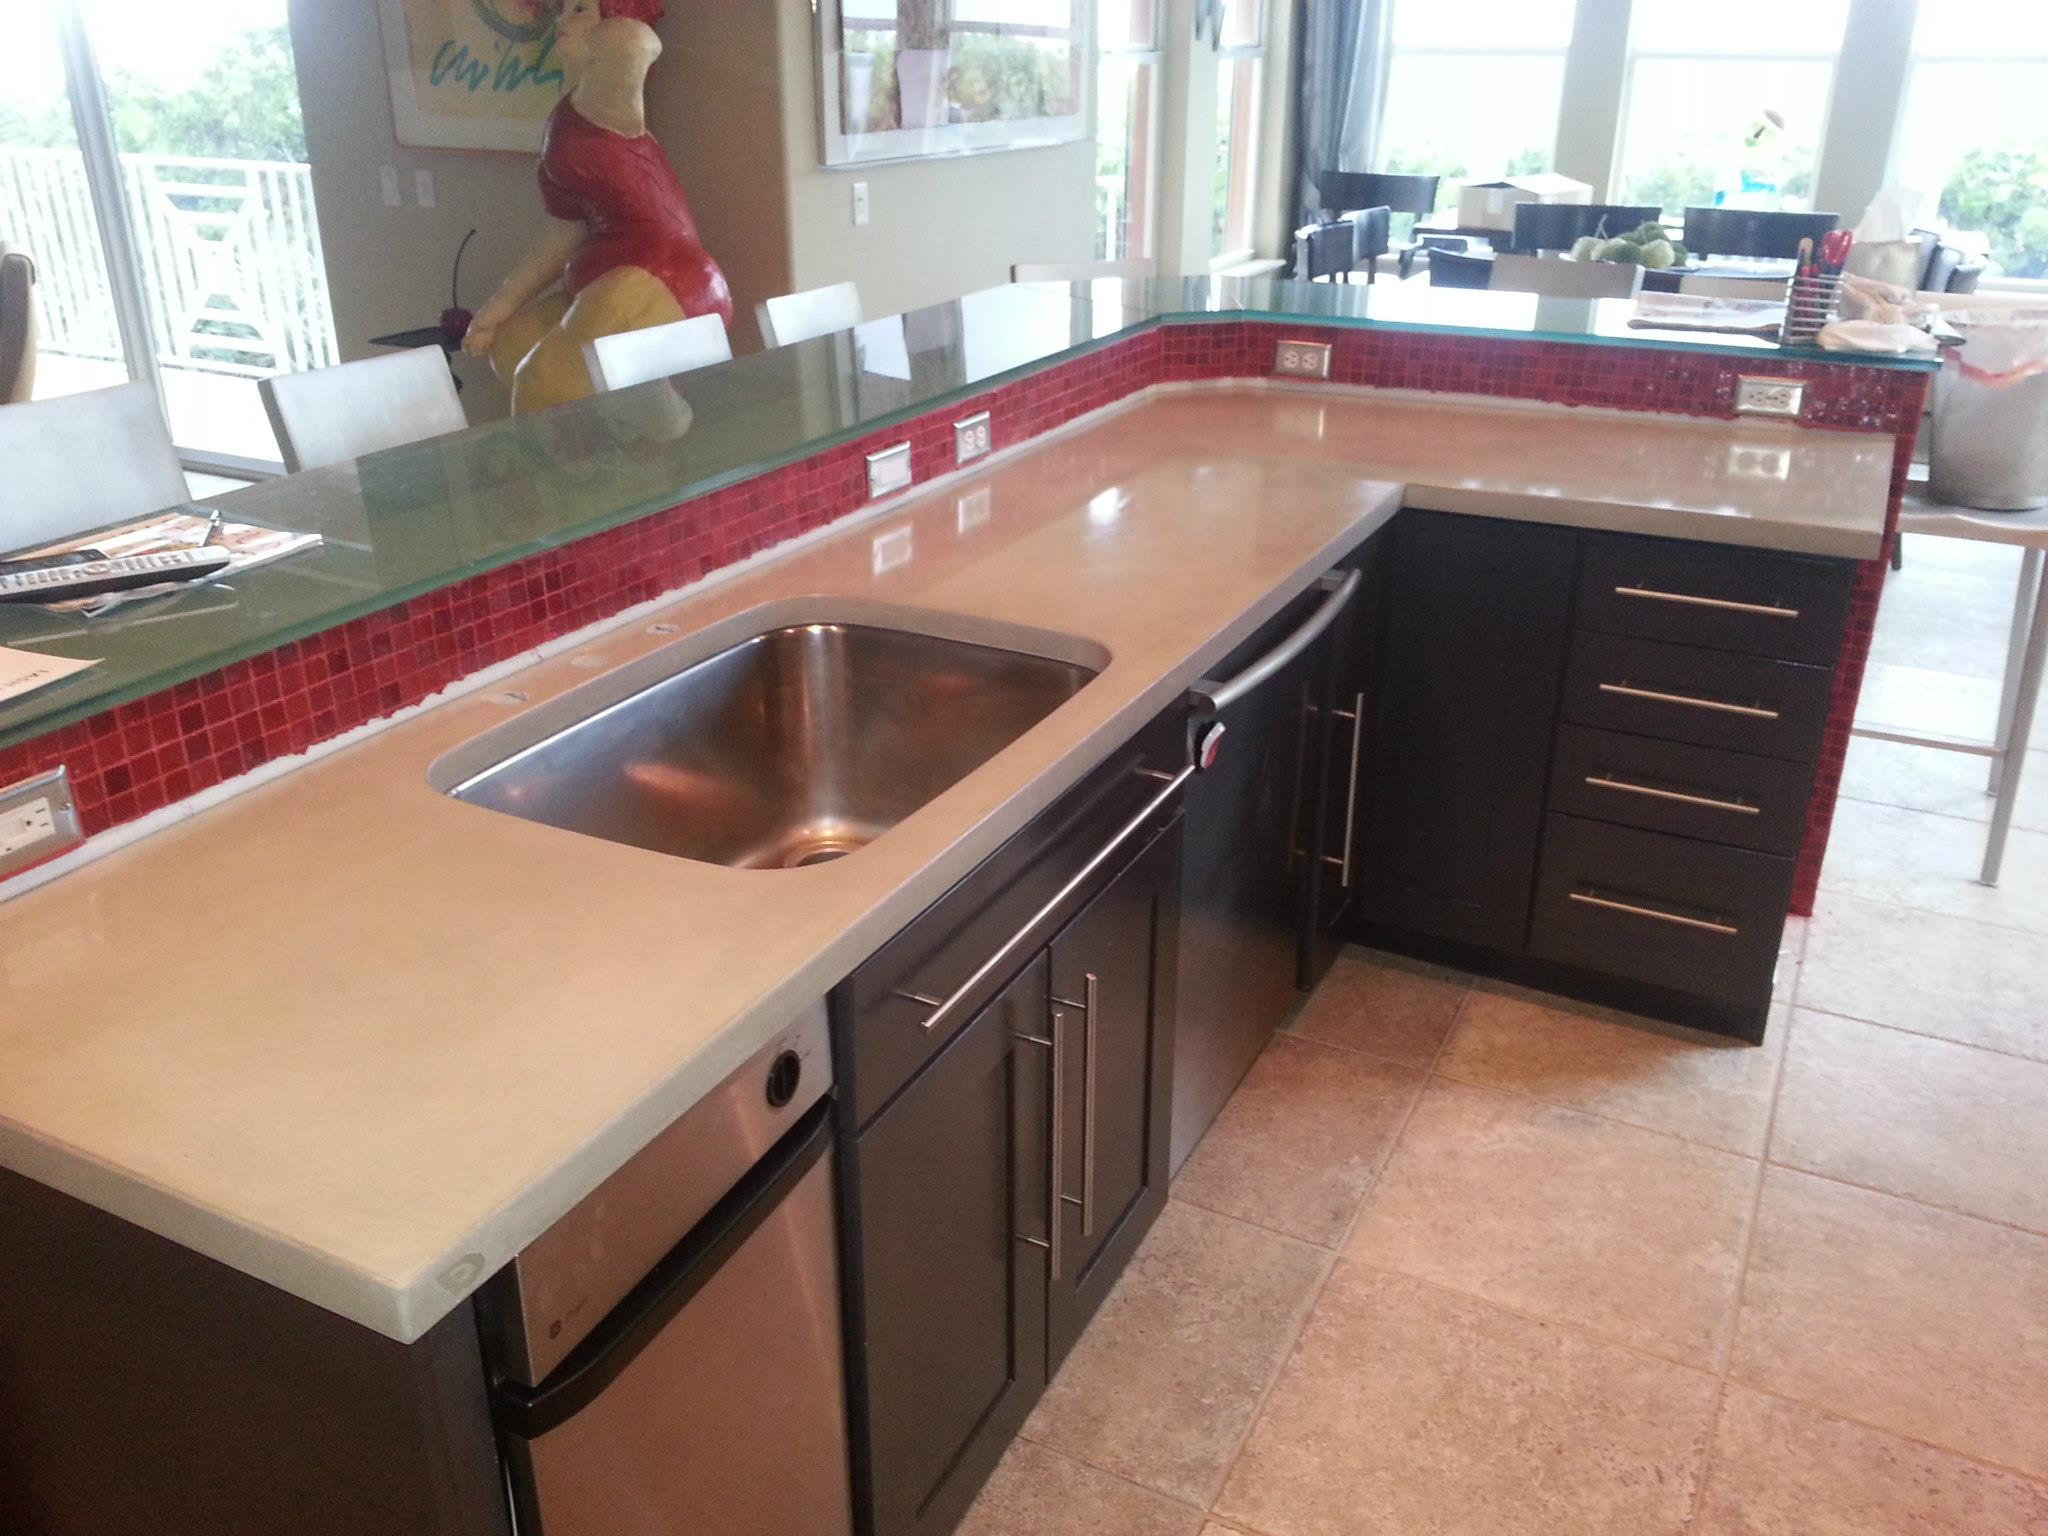 How To Effectively Sell Concrete Countertops To Homeowners Concrete Countertop Institute